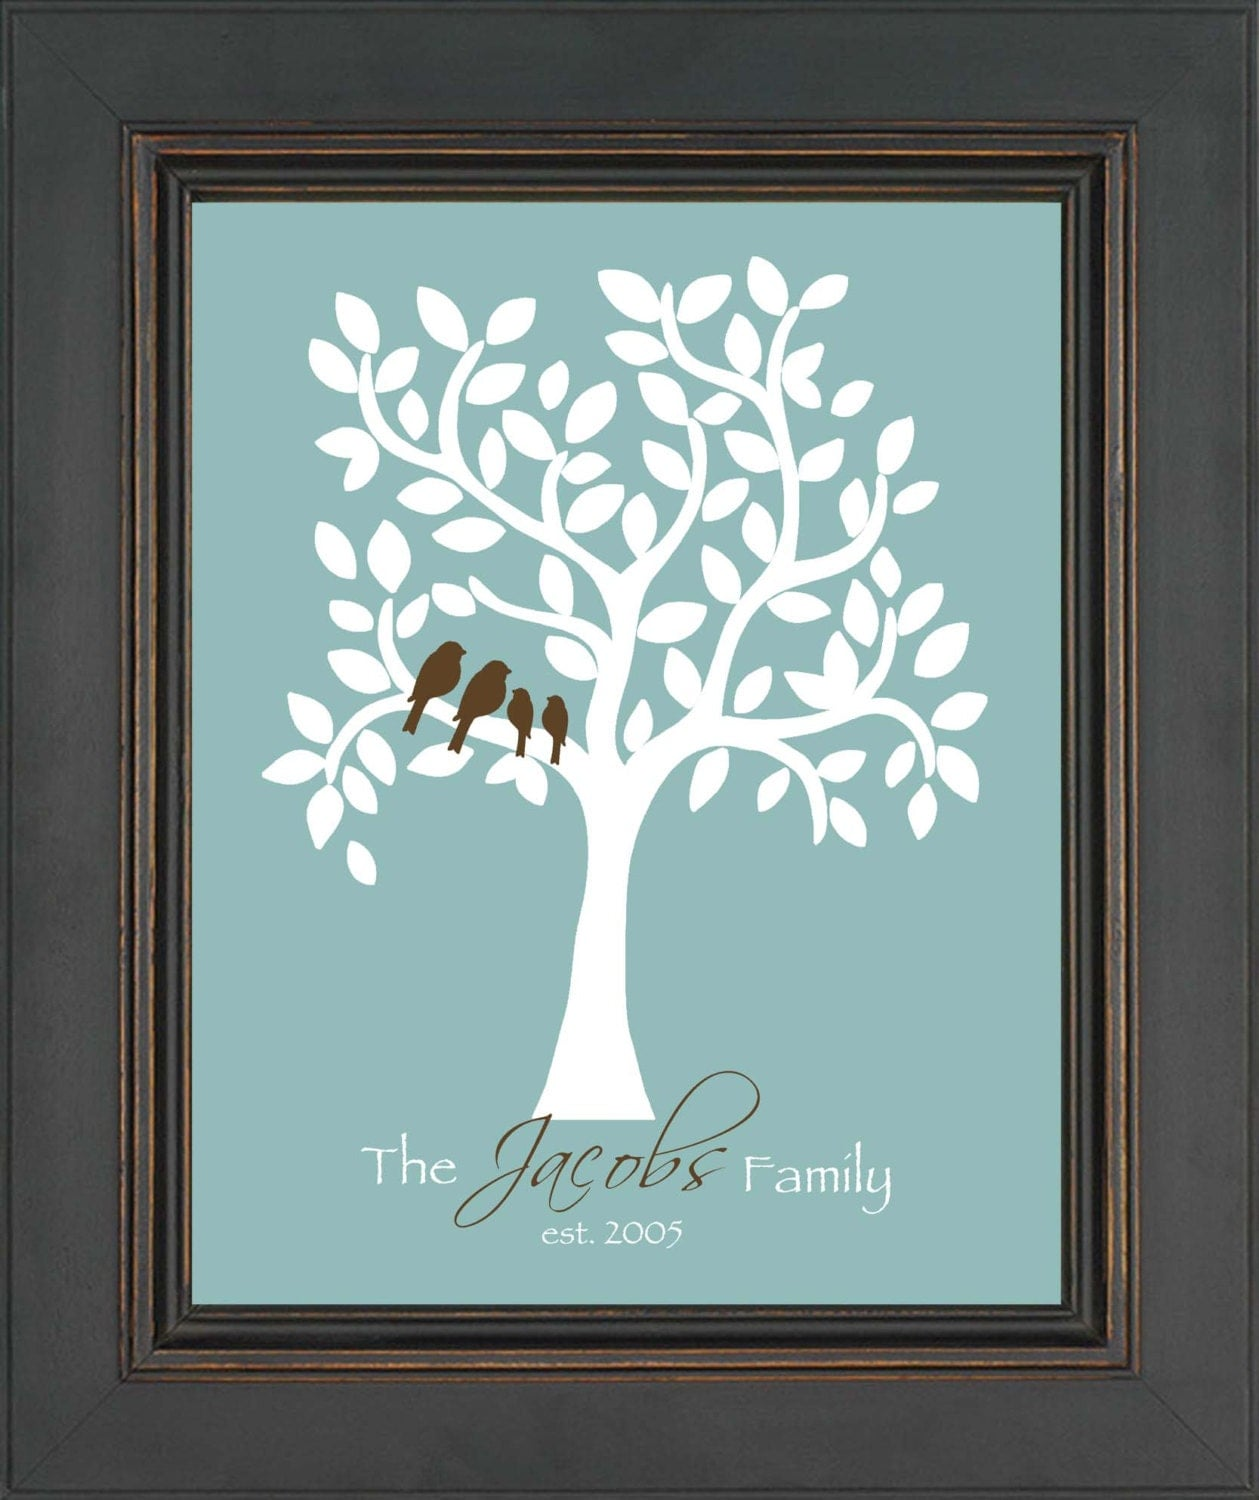 Family tree personalized gift personalized gift for family for Family tree gifts personalized